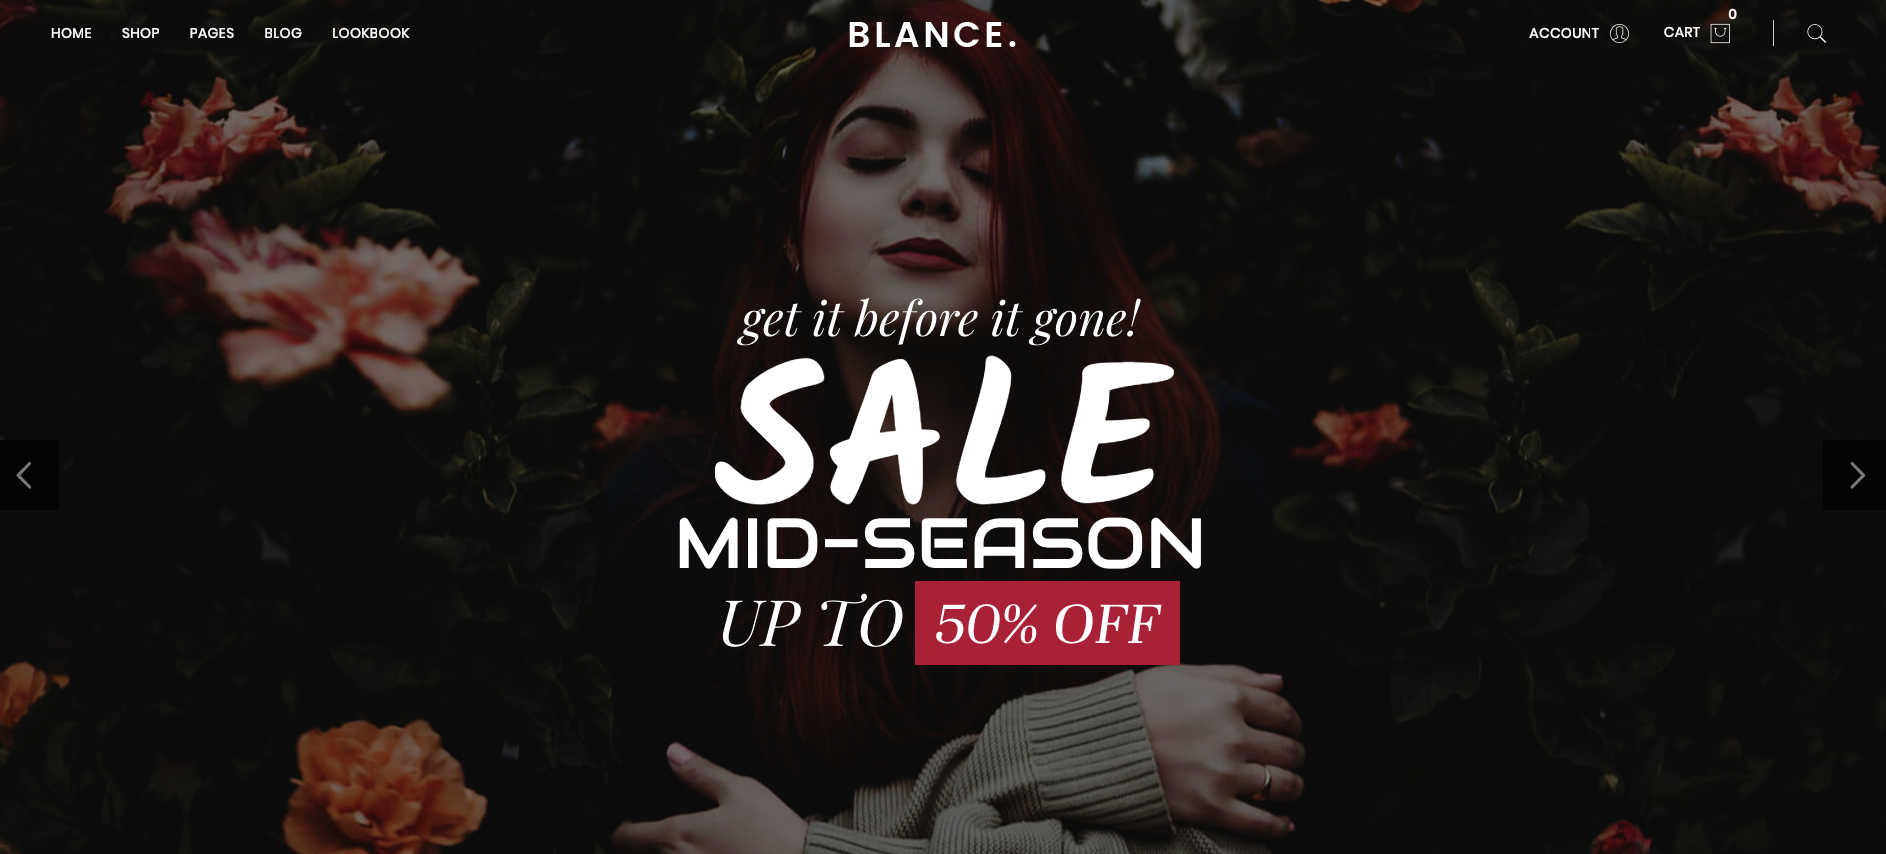 Blance 2.0.1: A Best Minimal WooCommerce Theme Designed to Sell 2019